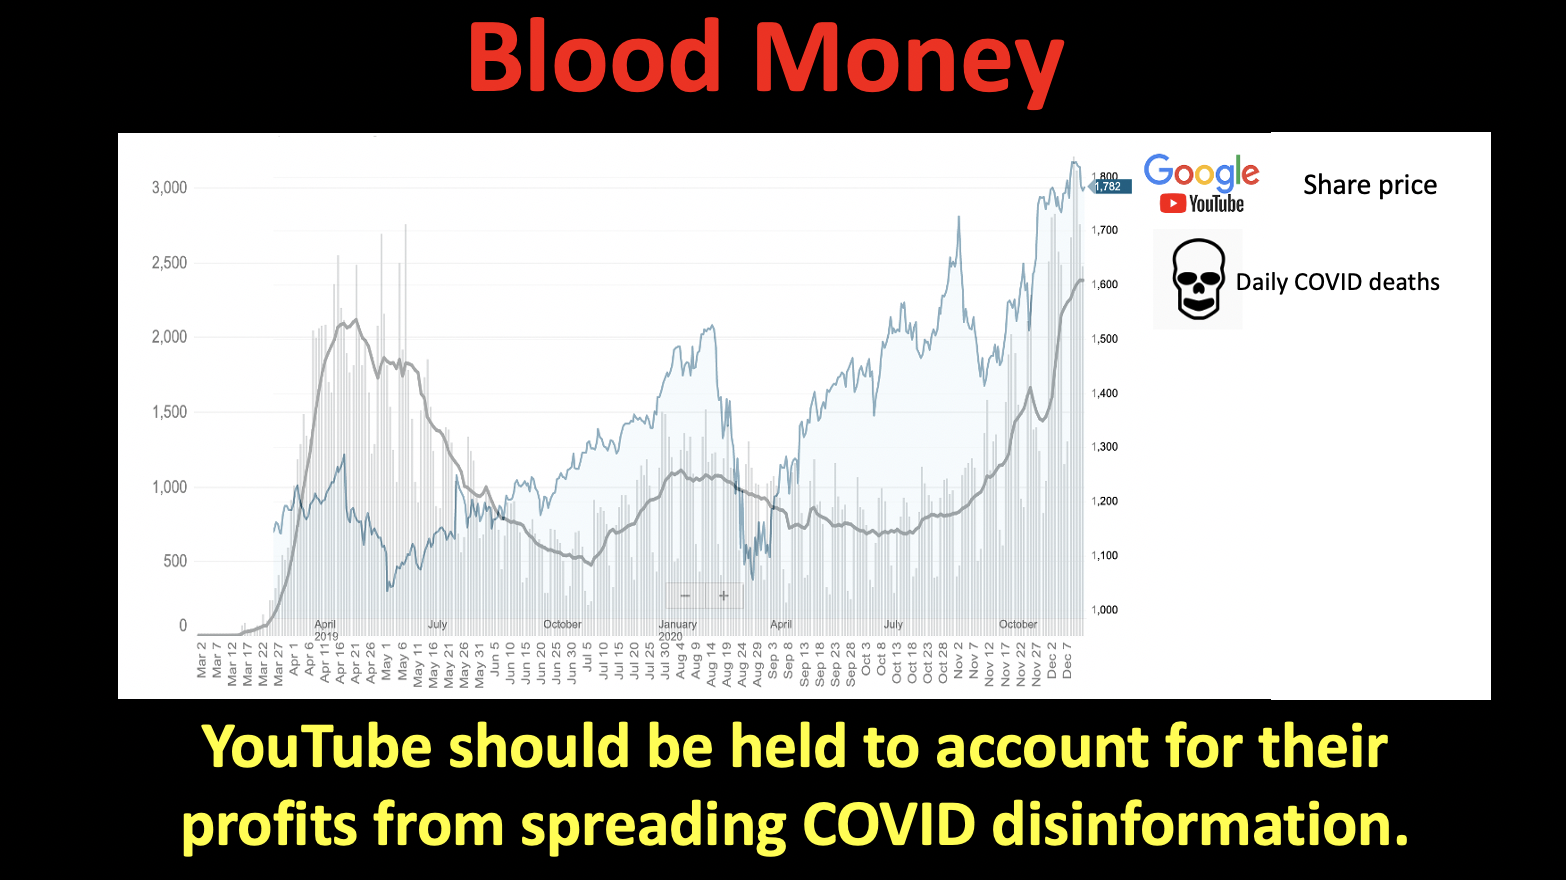 Mapping Google Share Price vs. Number of daily deaths from COVID-19.